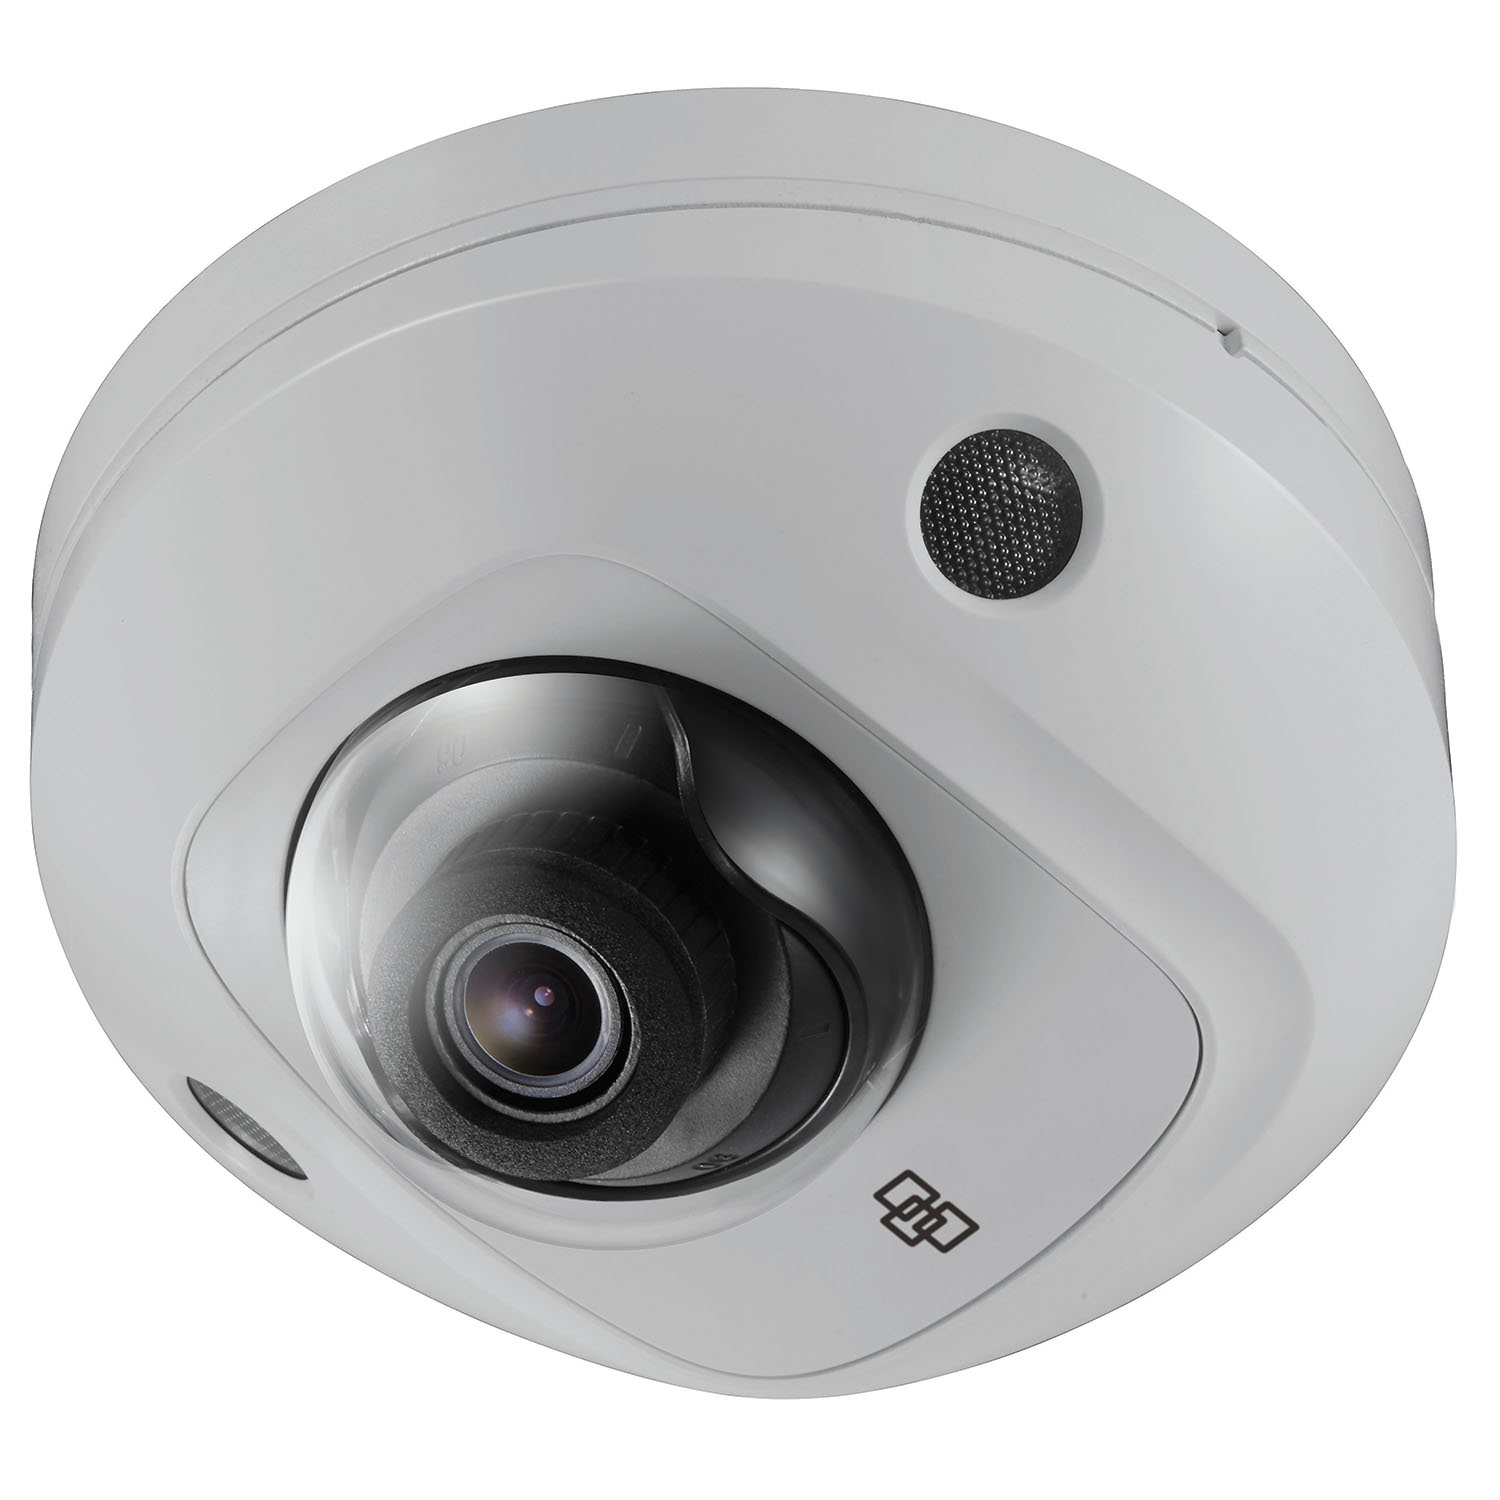 TVW-5605 INTERLOGIX TruVision 4MPx, H.265/H.264, IP Fixed Lens Wedge, 2.8mm, True D/N, WDR, 10m IR, Micro SD/SDHC/SDXC Slot, Audio, Alarms, PoE (802.3-af)/12VDC, IP66, IK8, Gray ************************* SPECIAL ORDER ITEM NO RETURNS OR SUBJECT TO RESTOCK FEE *************************